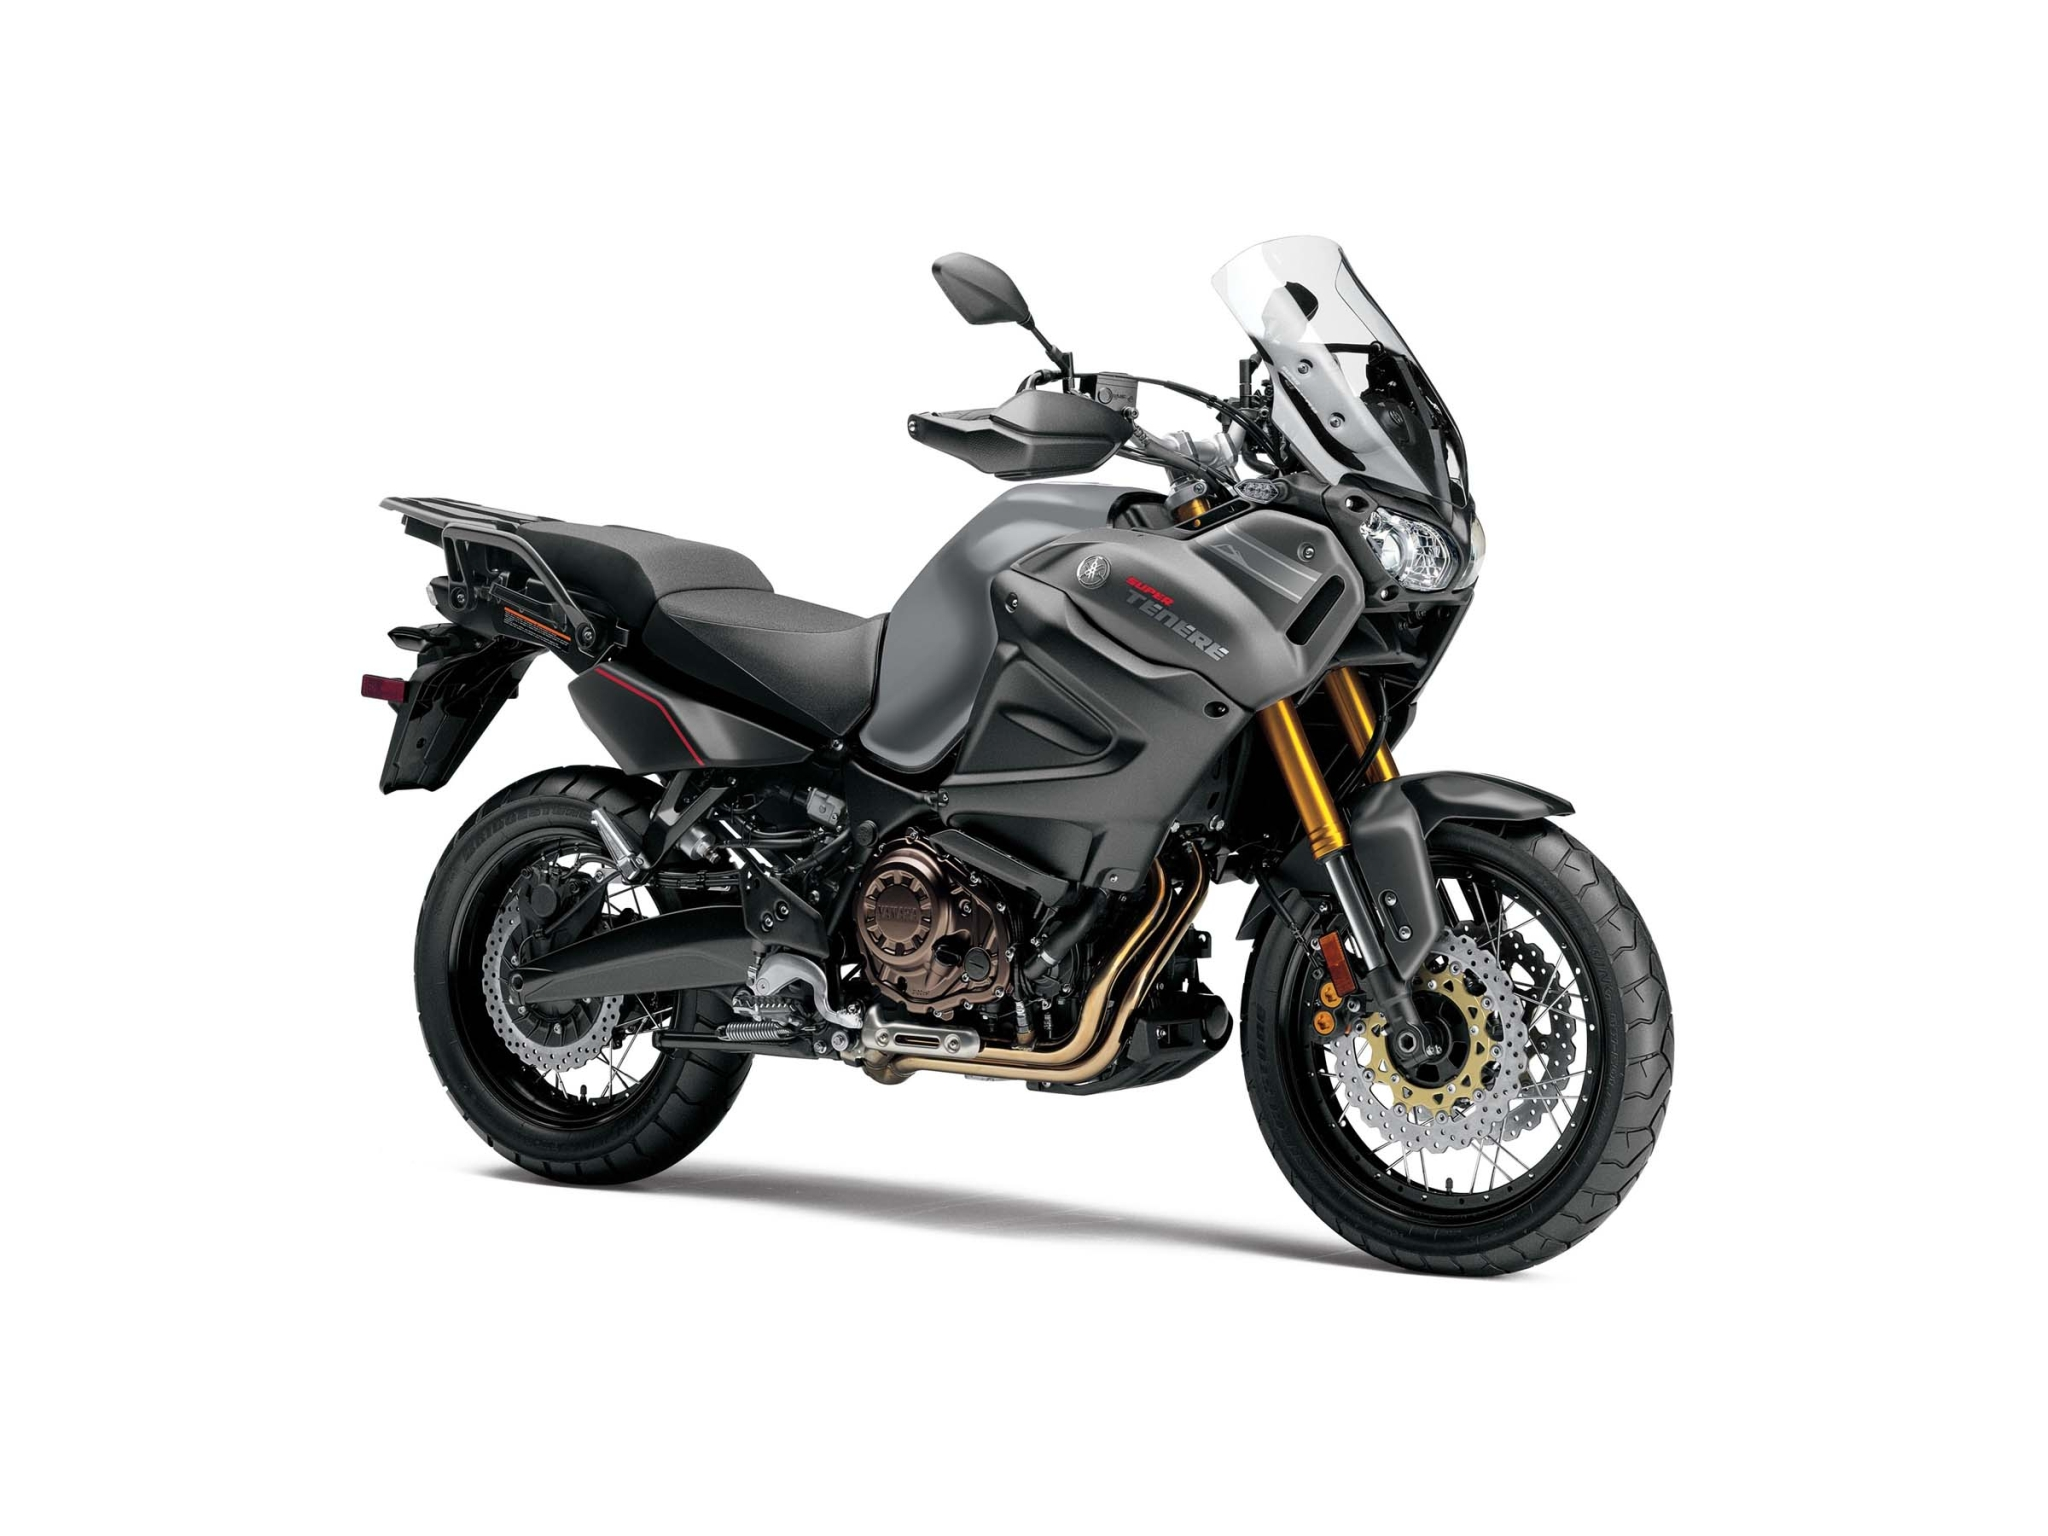 2014 yamaha xt1200z super tenere es arrives in the us. Black Bedroom Furniture Sets. Home Design Ideas